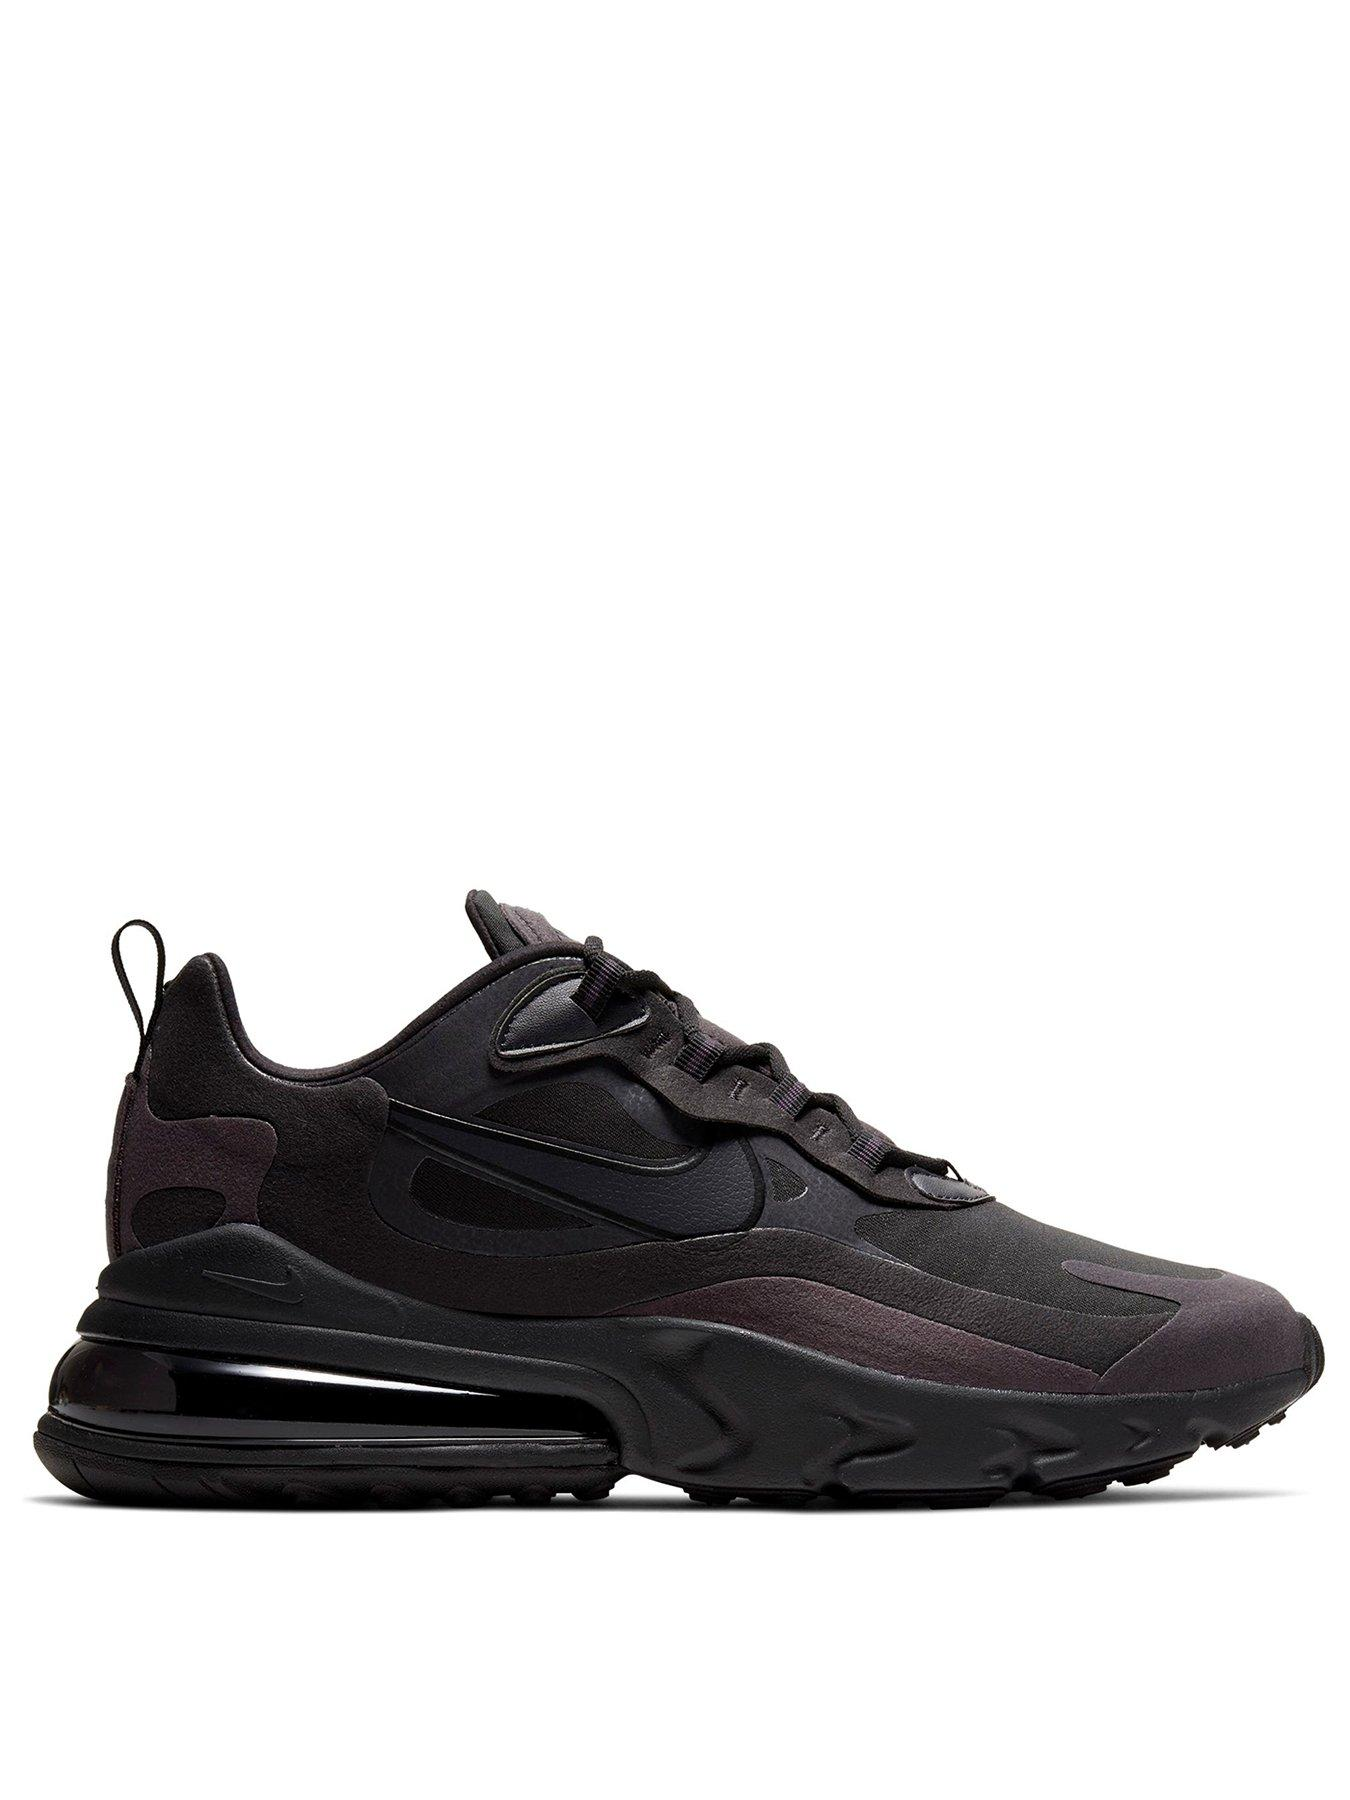 Mens Trainers | Shop Mens Trainers